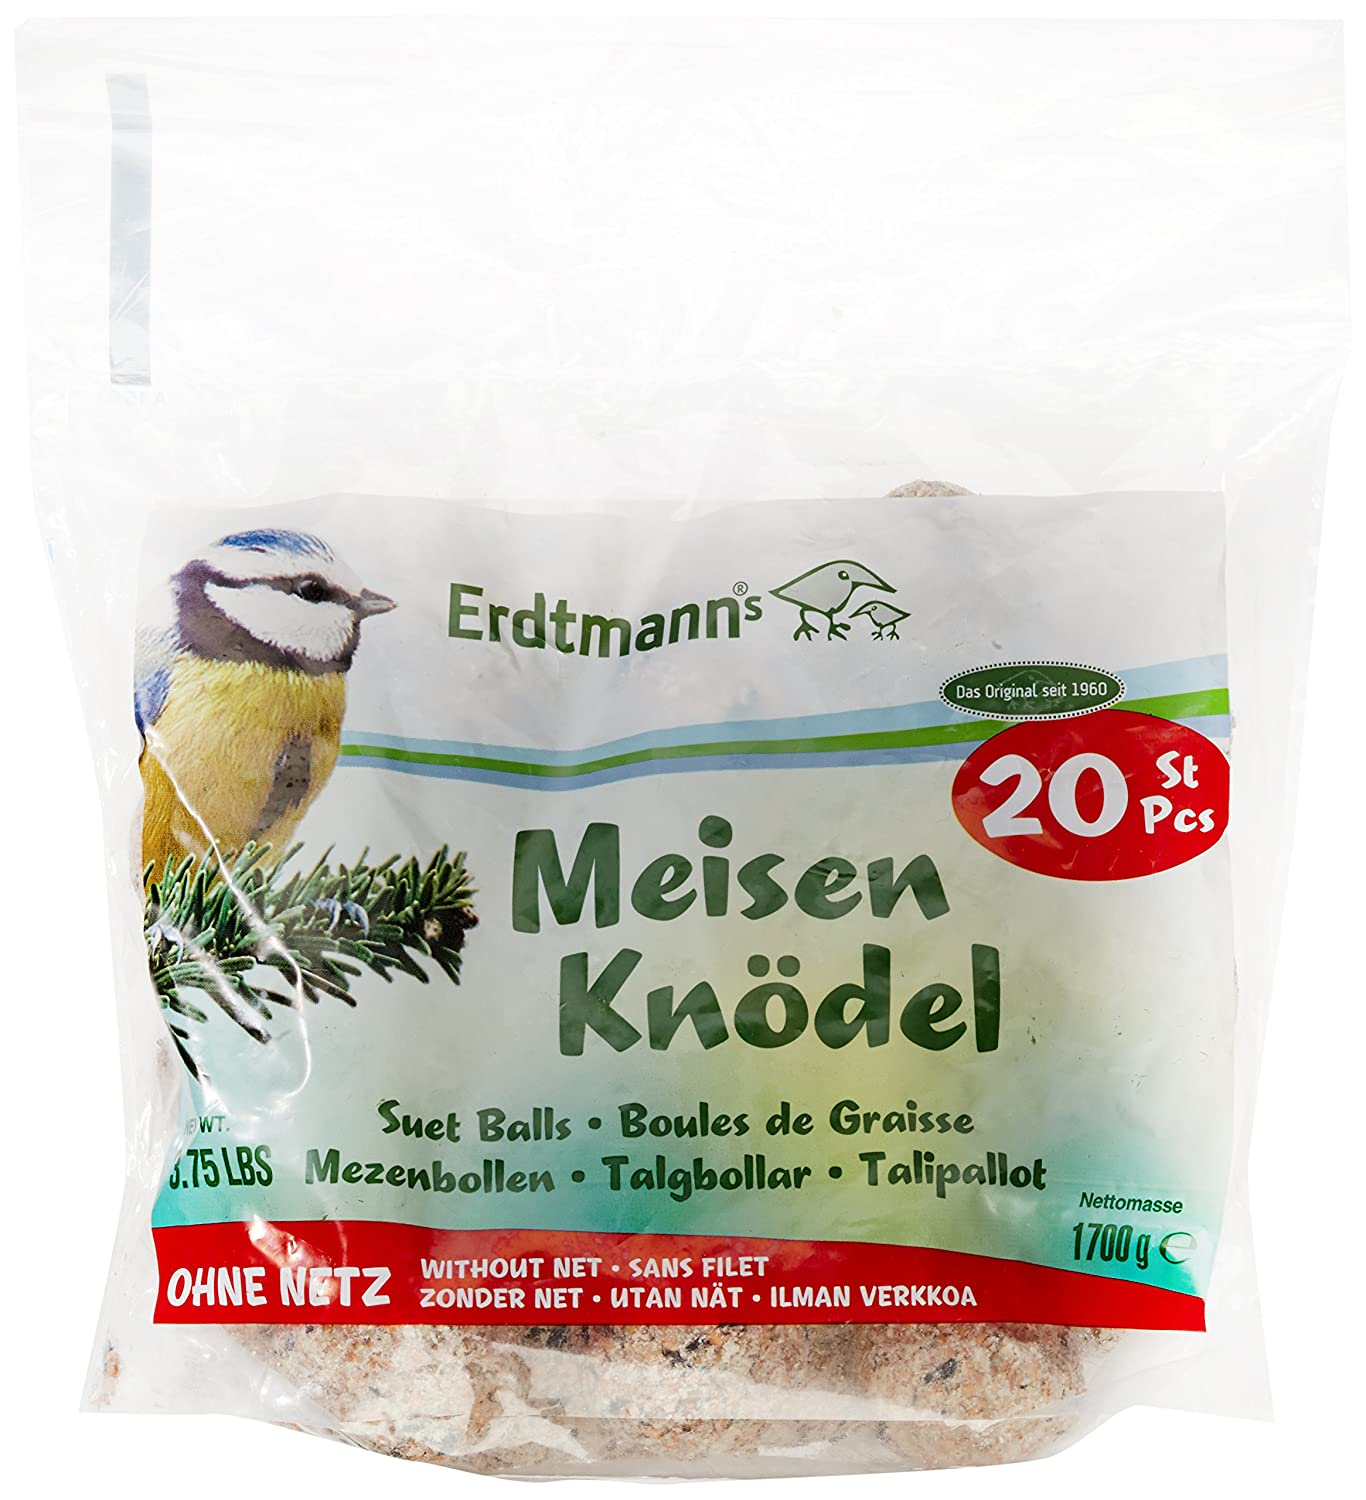 Erdtmann Suet Balls without Net, Pack of 20 without nets